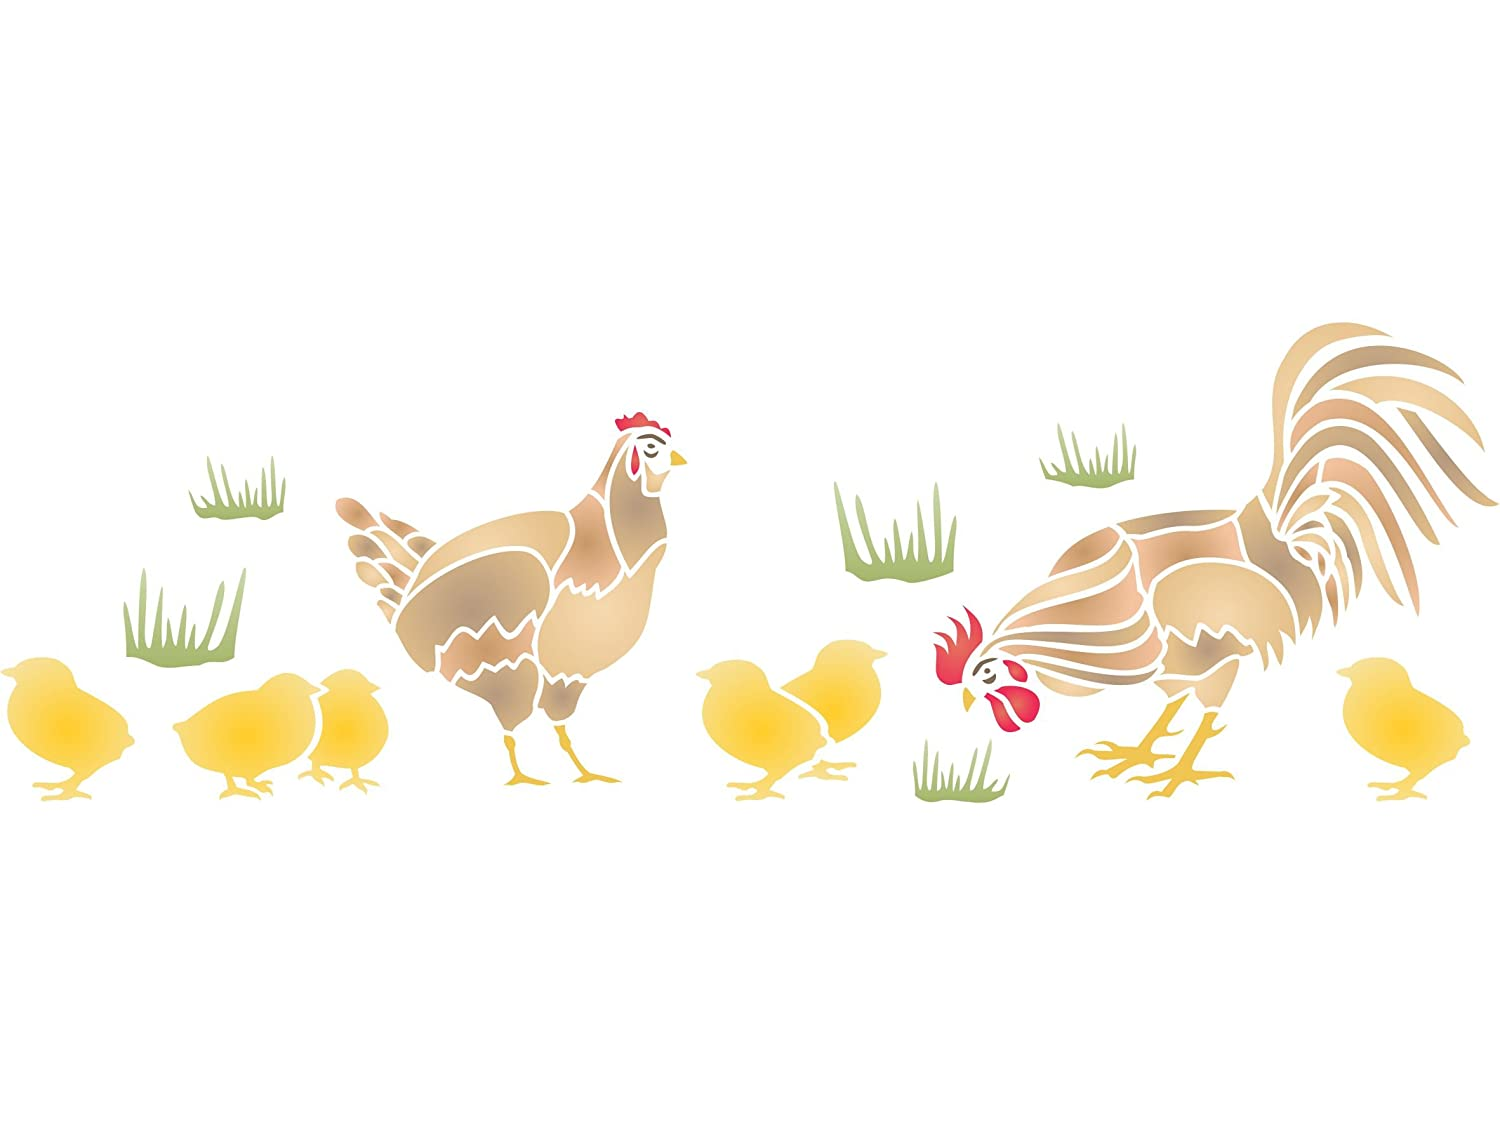 Amazon chicken stencil size 20w x 65h reusable wall amazon chicken stencil size 20w x 65h reusable wall stencils for painting best quality wall bird animal stencil ideas use on walls floors amipublicfo Gallery